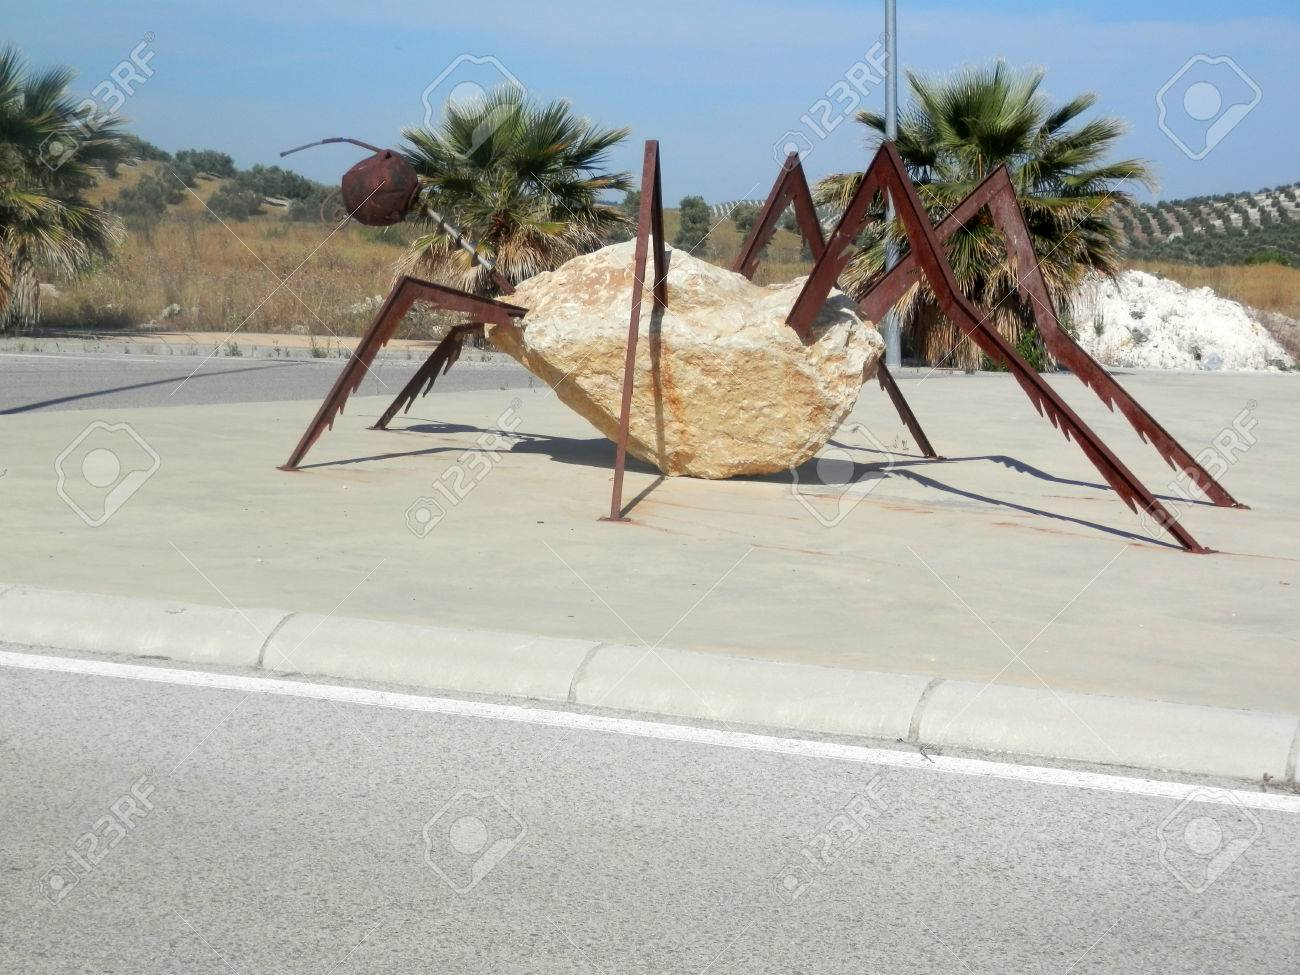 Large Steel and concrete insect on roundabout near Jaen, Andalusia - 60681872